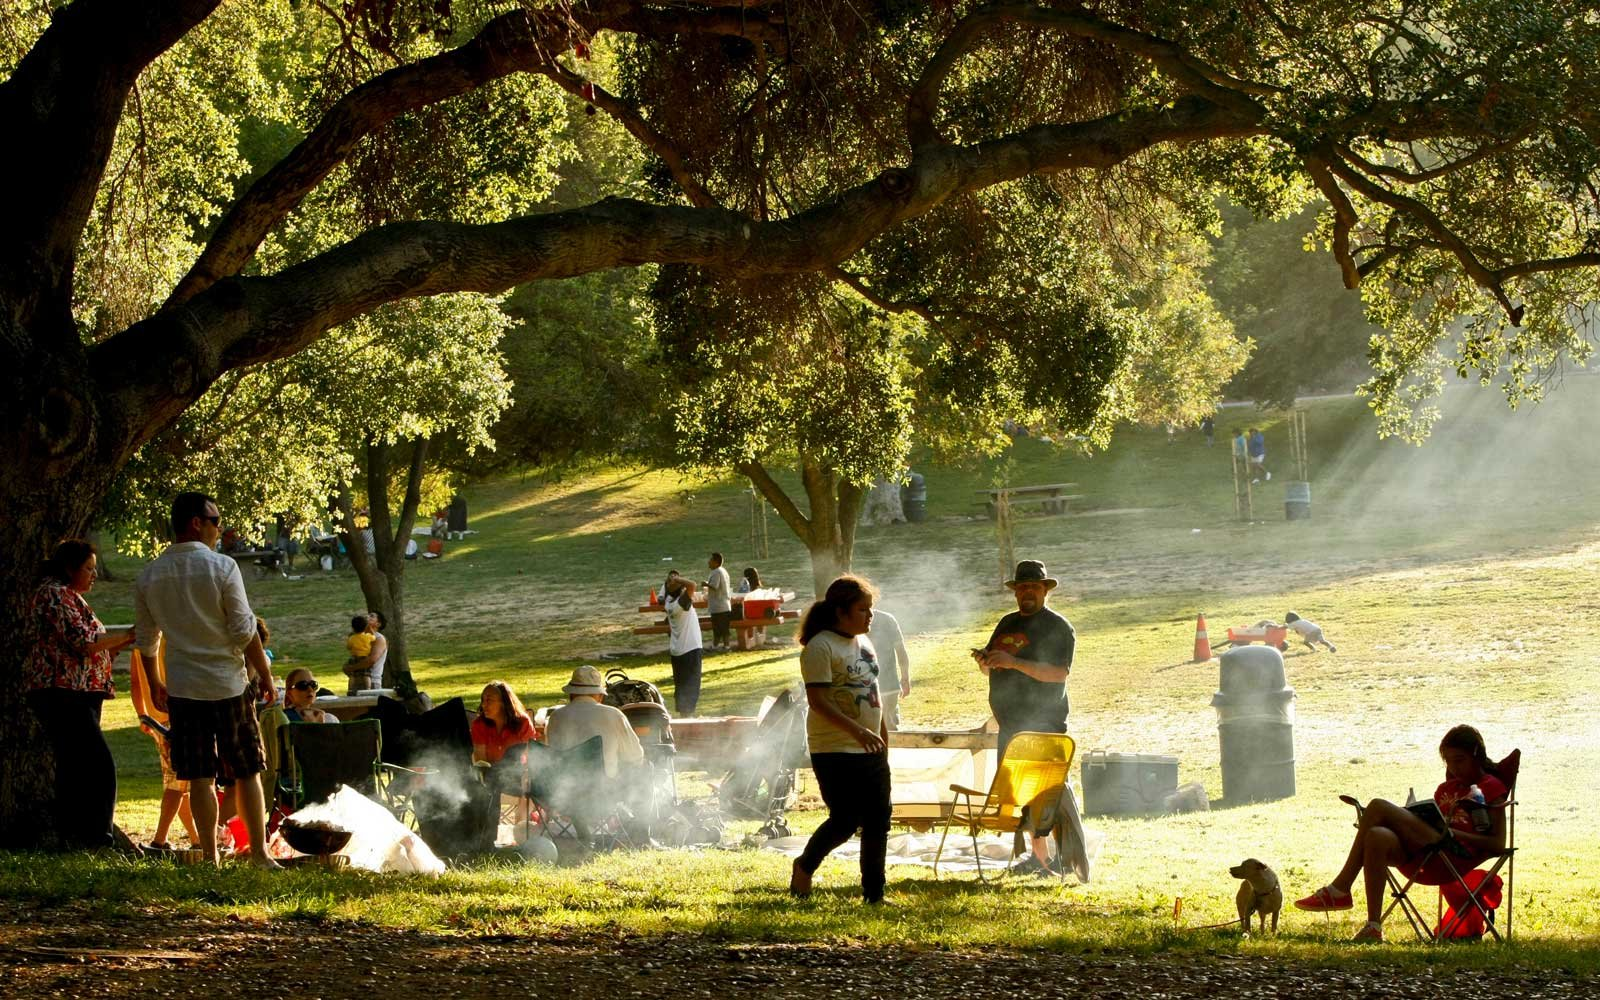 Families picnic in Griffith Park in Los Angeles during the long Memorial Day Weekend